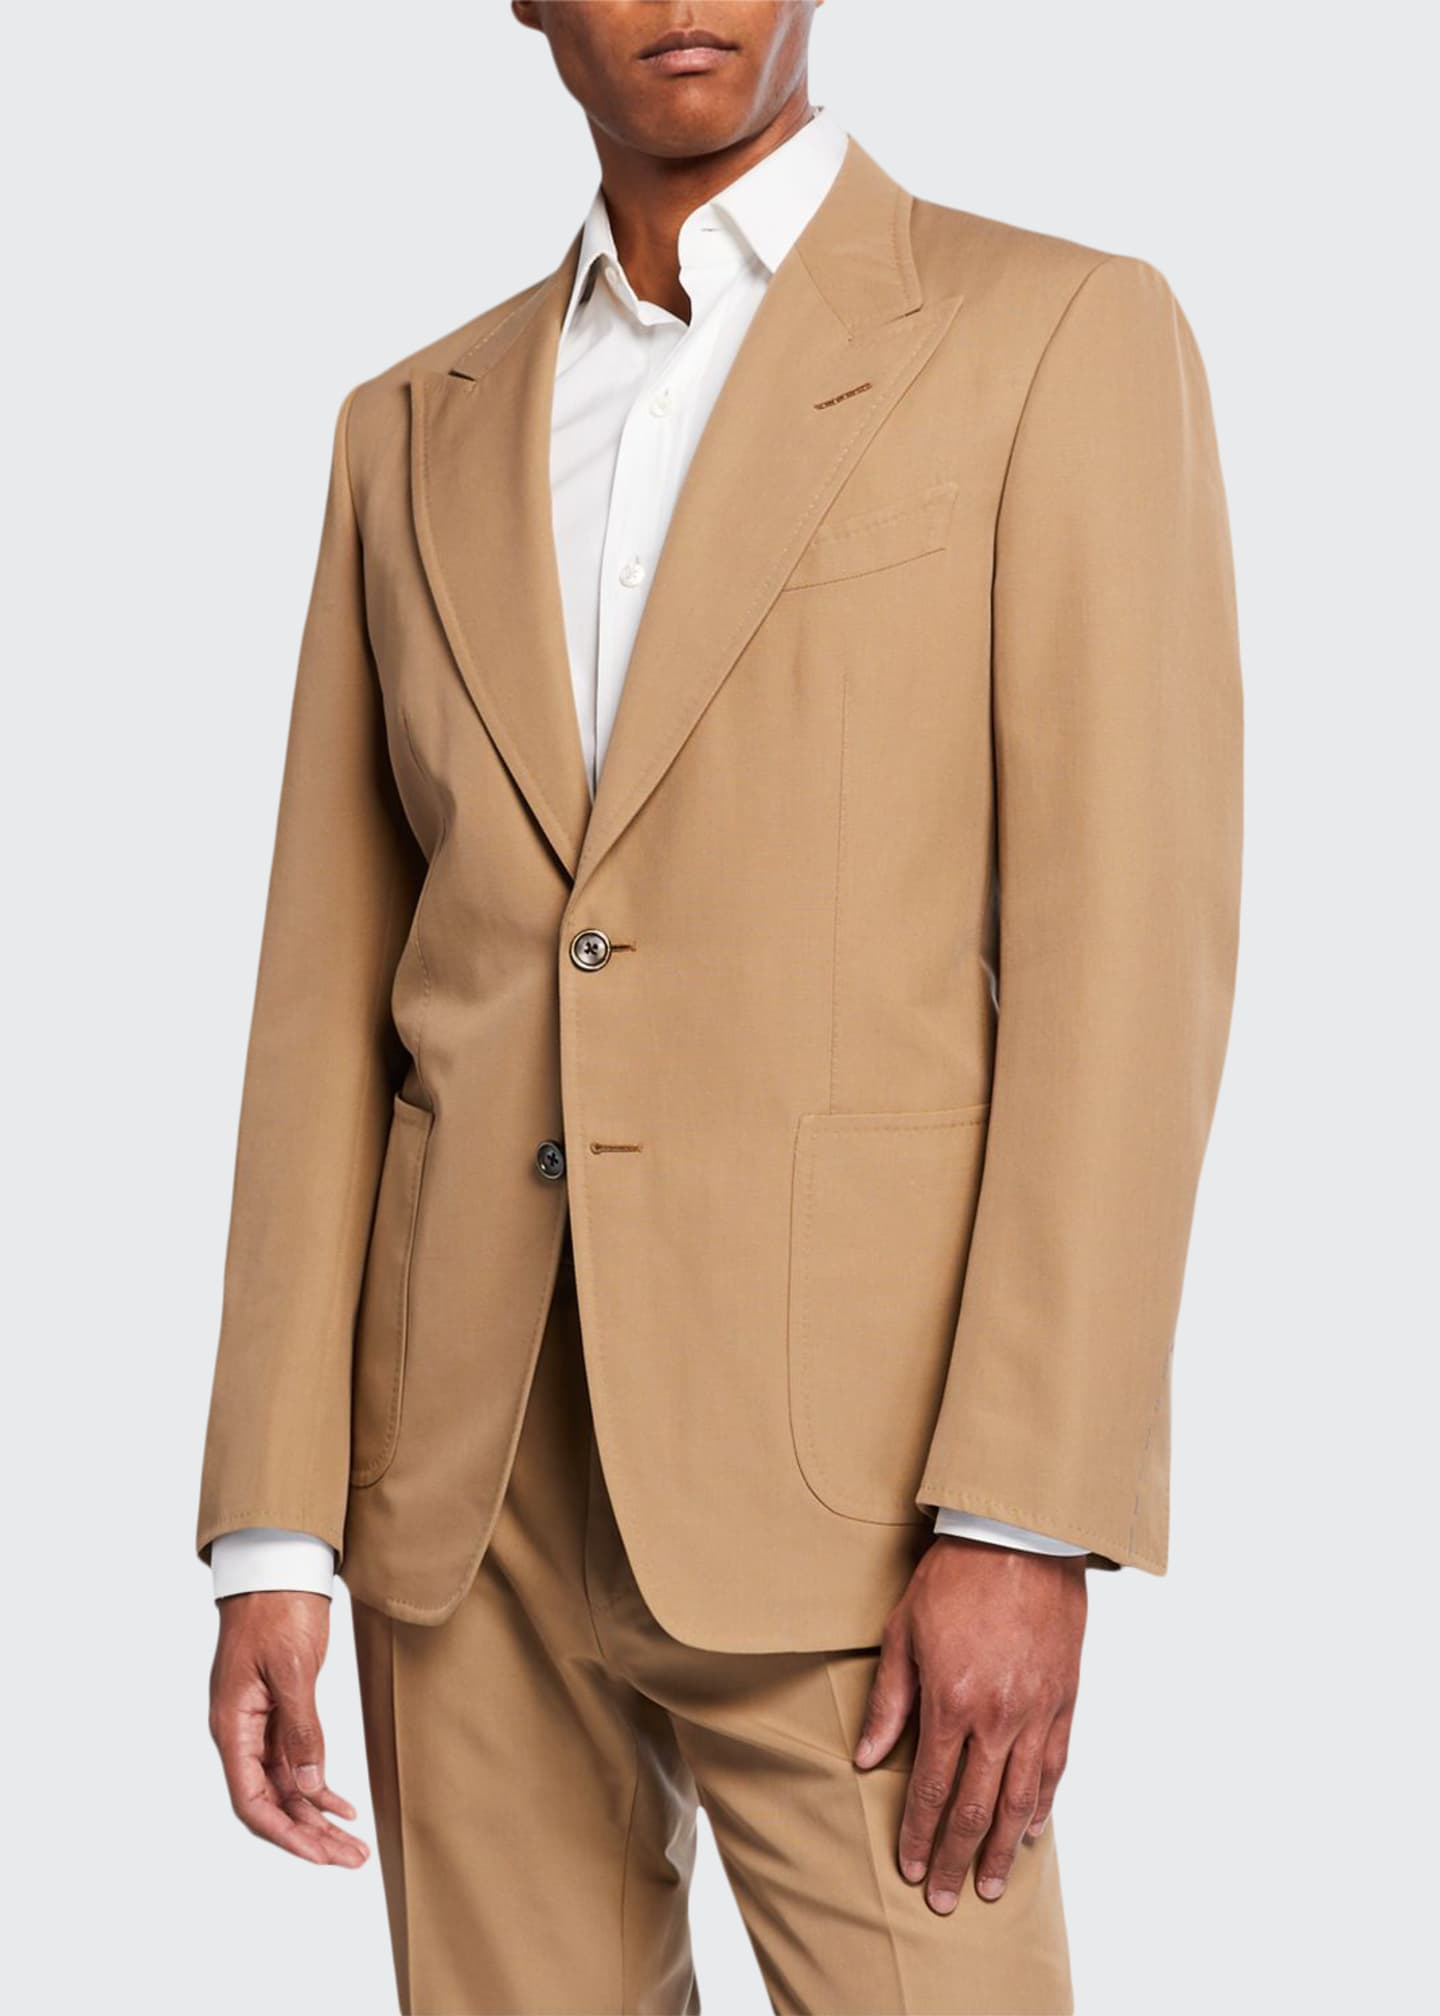 TOM FORD Men's Shelton Solid Twill Two-Button Jacket